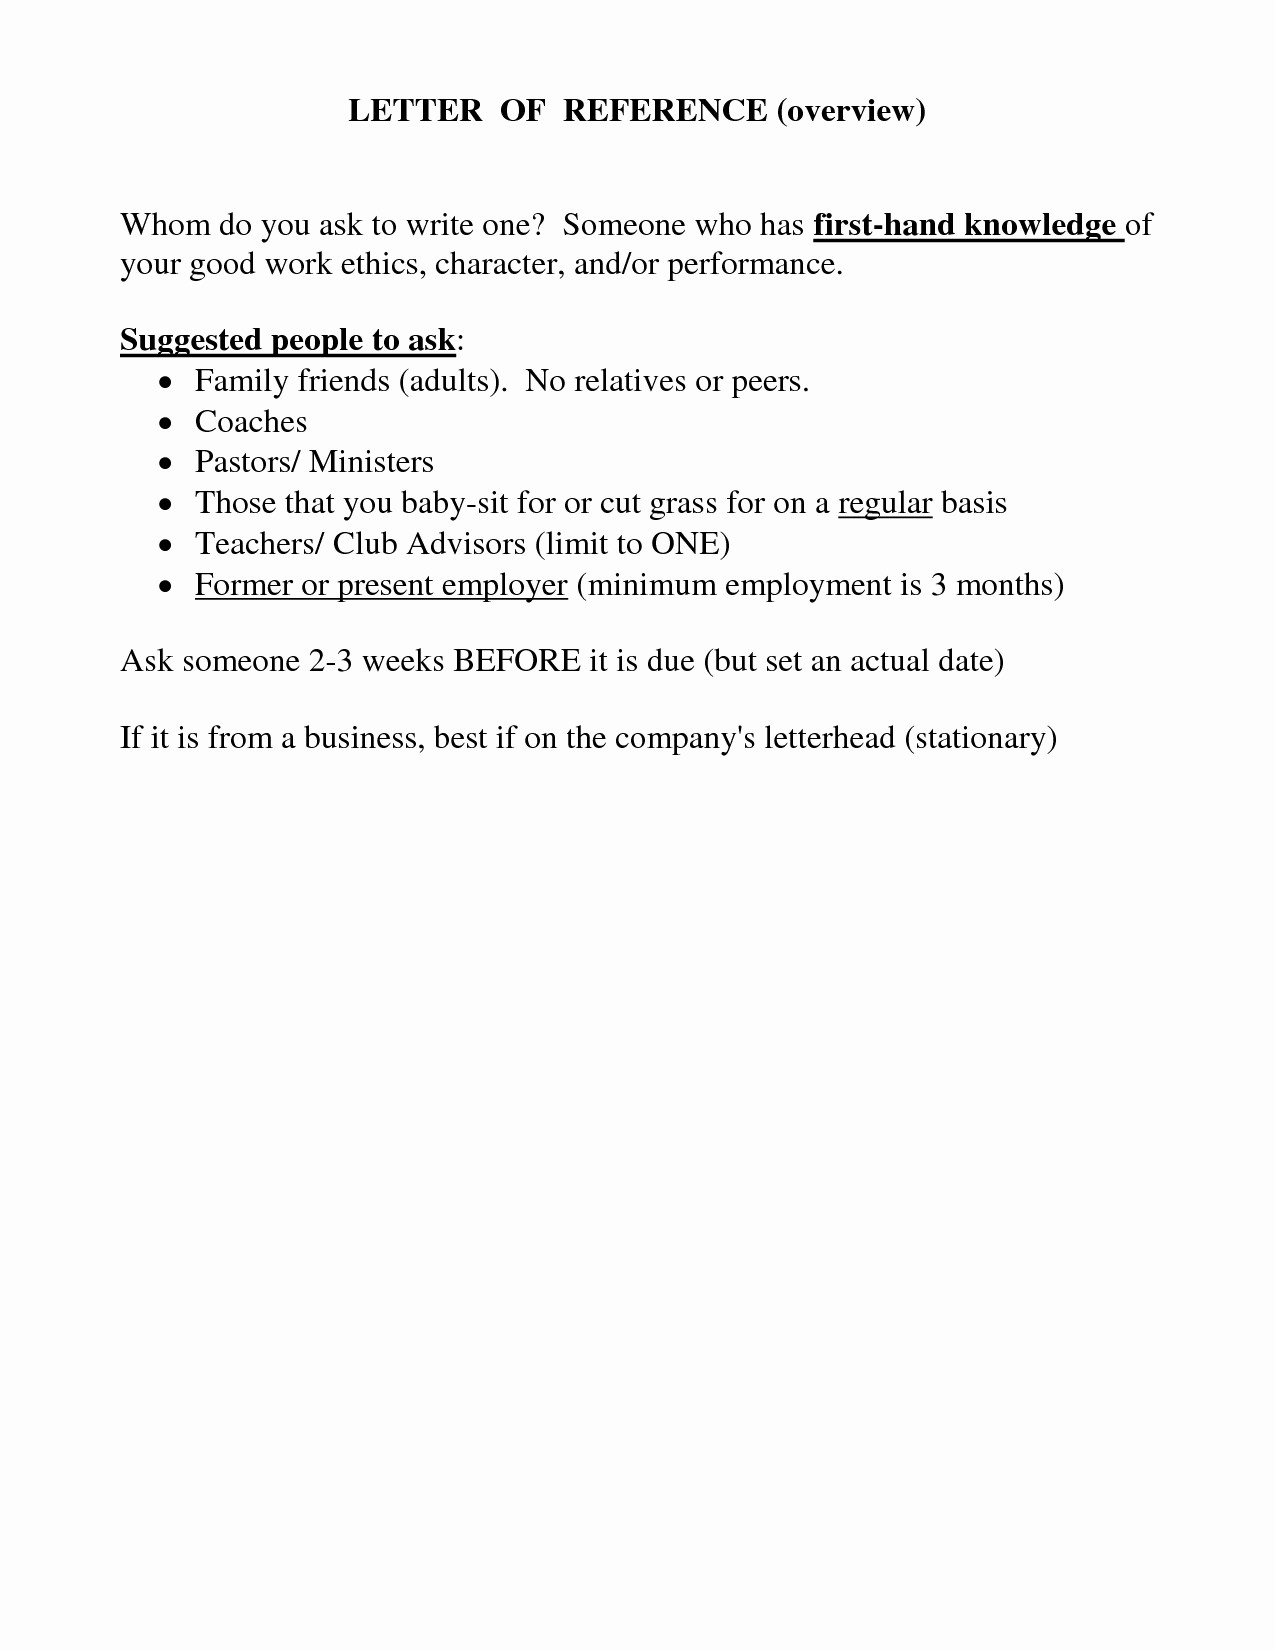 Personal Reference Letter for A Friend Template - Character Reference Letter Template for Job Fresh Letter Re